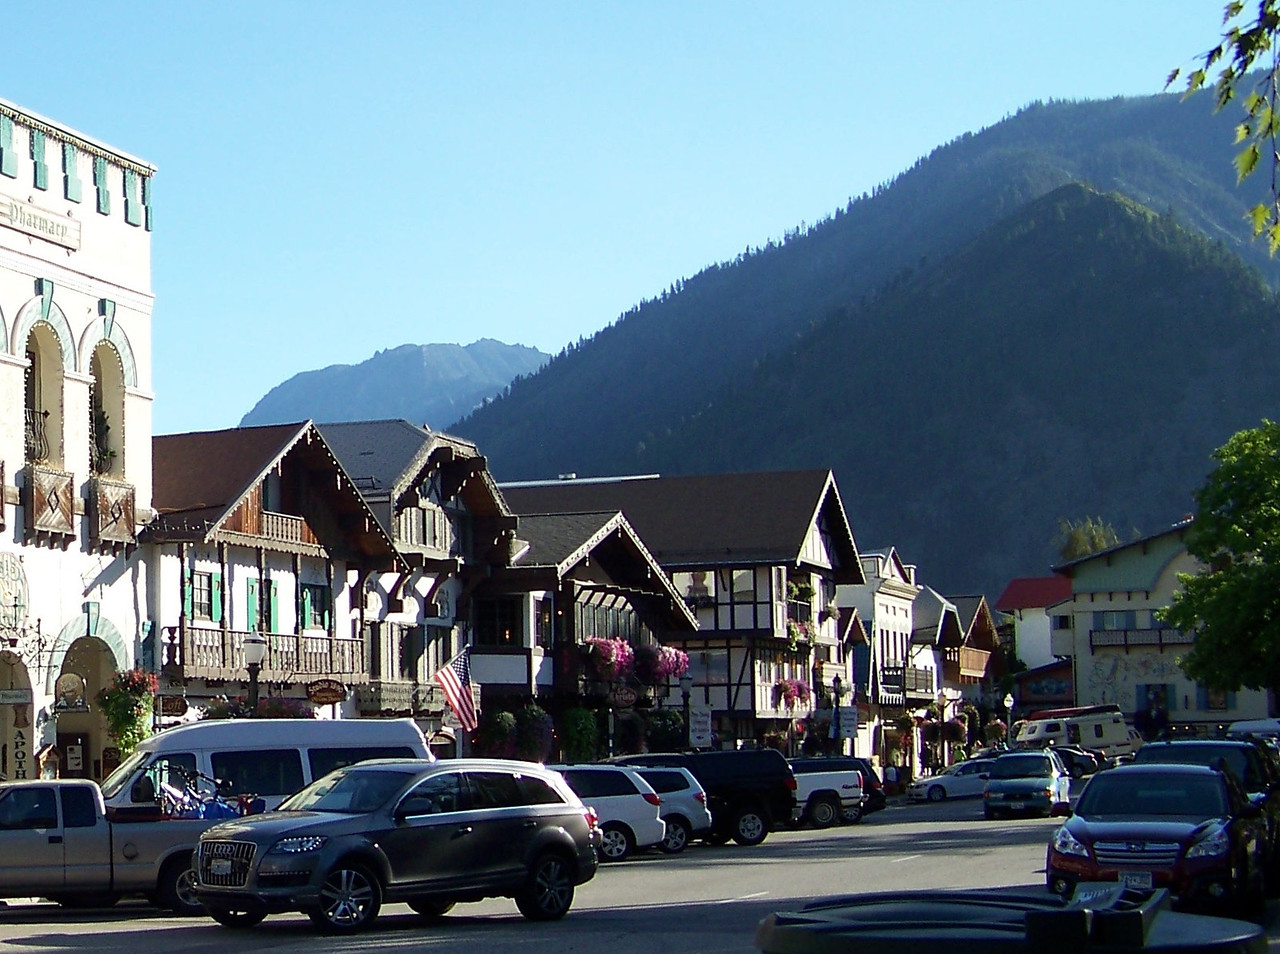 Wilkommen to Leavenworth, Washington's own little slice of Bavaria!  Dave, Pat and I made the two-hour drive from Seattle for a quick overnight getaway here.  This is one section of Front Street, which is lined with German-themed shops and restaurants.